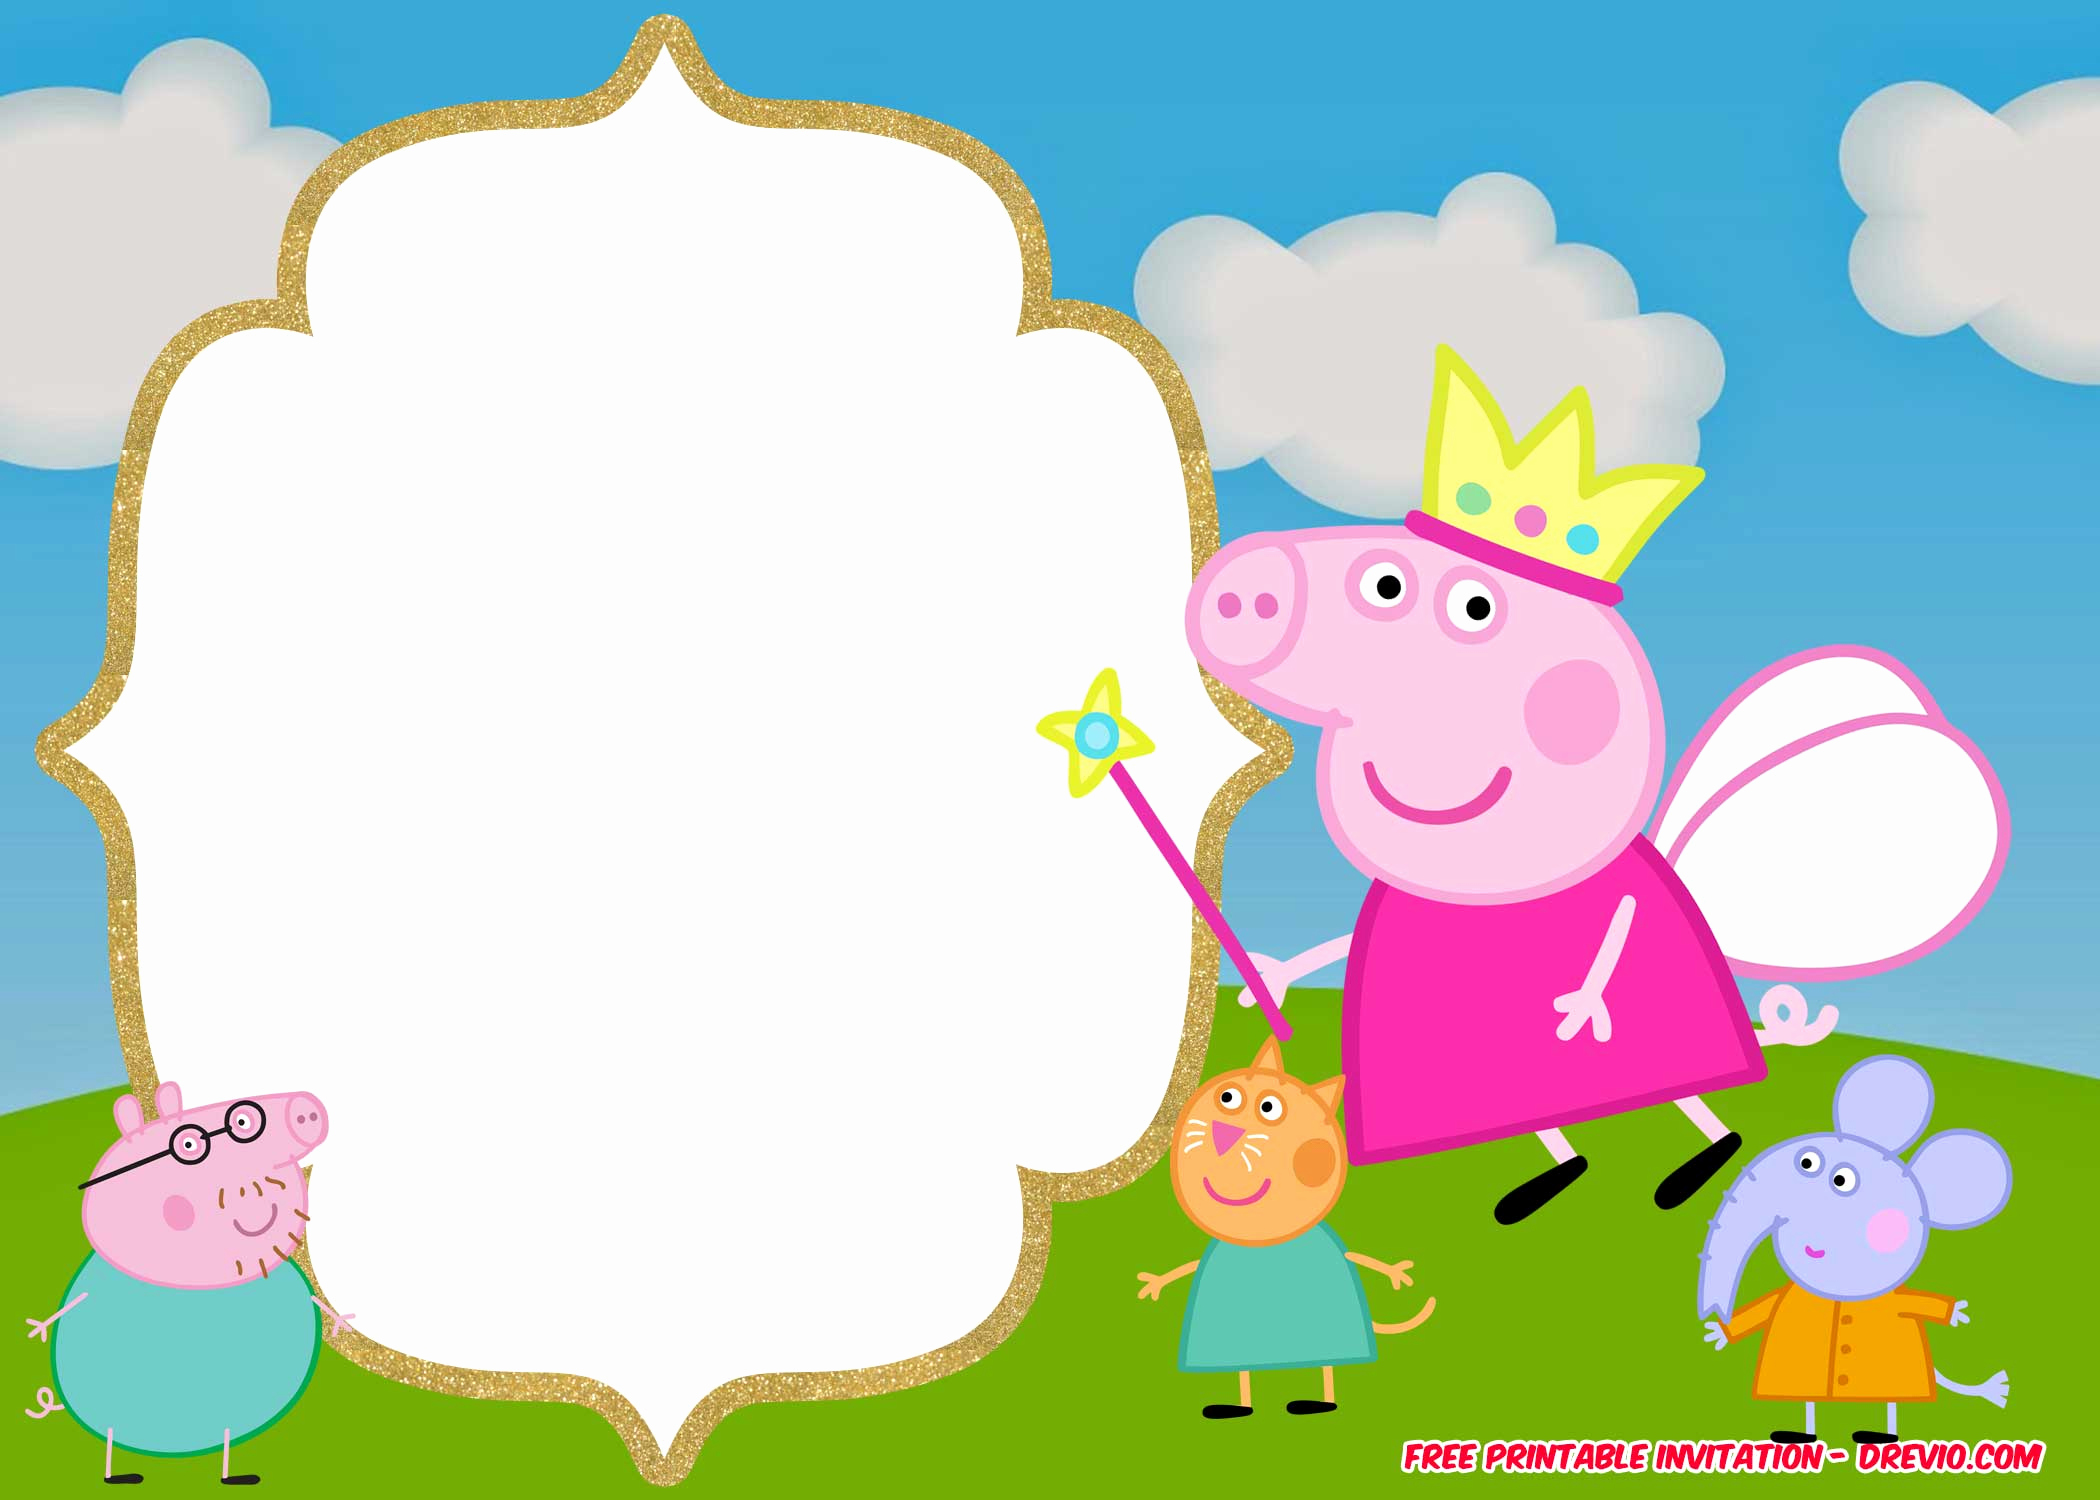 Peppa Pig Invitation Template Free Elegant Free Printable Peppa Pig Invitation Birthday Templates